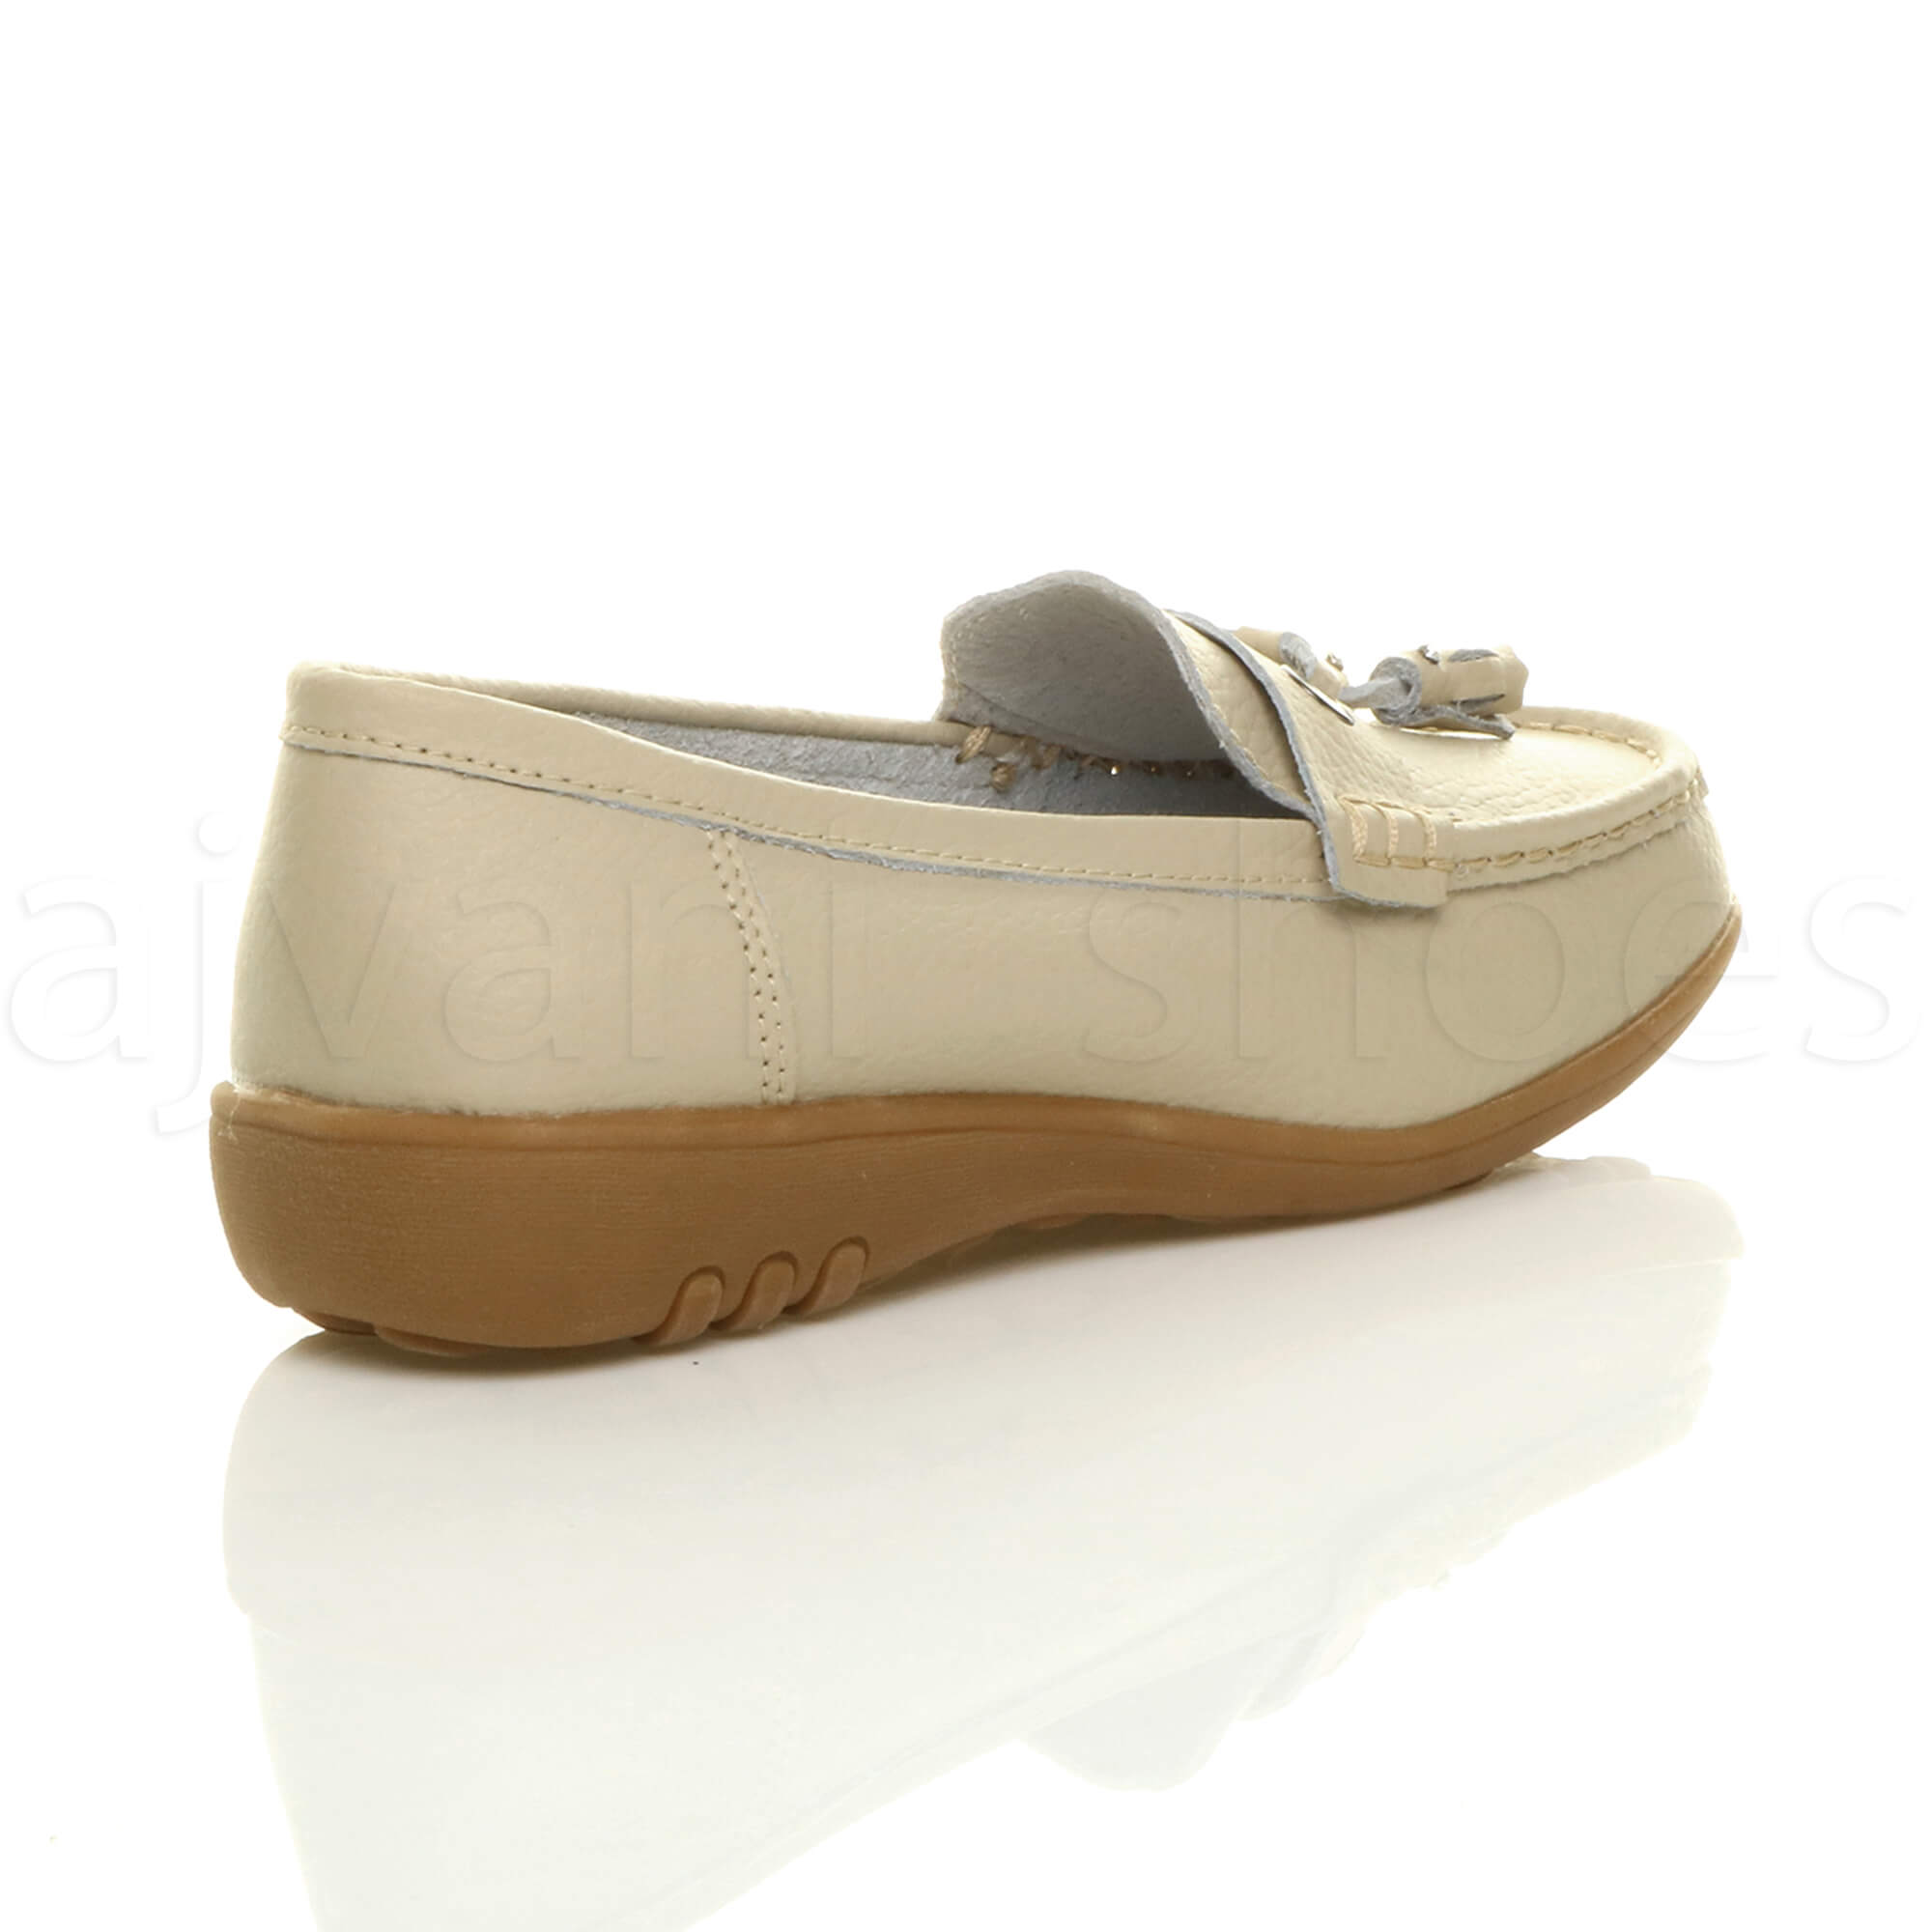 WOMENS-LADIES-LOW-HEEL-WEDGE-LEATHER-TASSEL-LOAFERS-COMFORT-MOCCASINS-SHOES-SIZE thumbnail 5